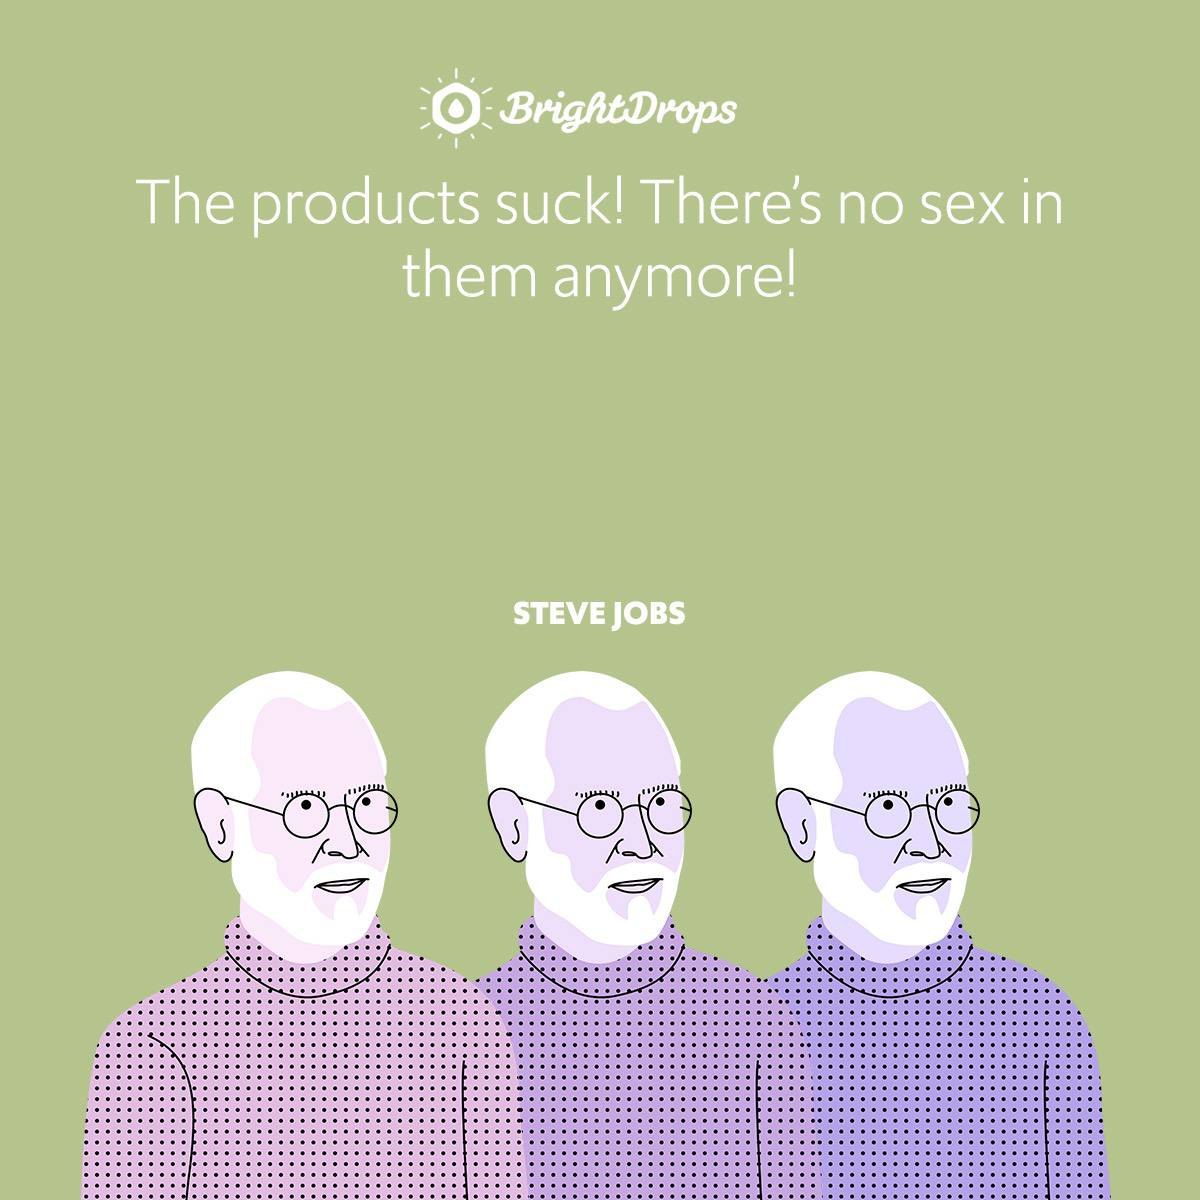 The products suck! There's no sex in them anymore!